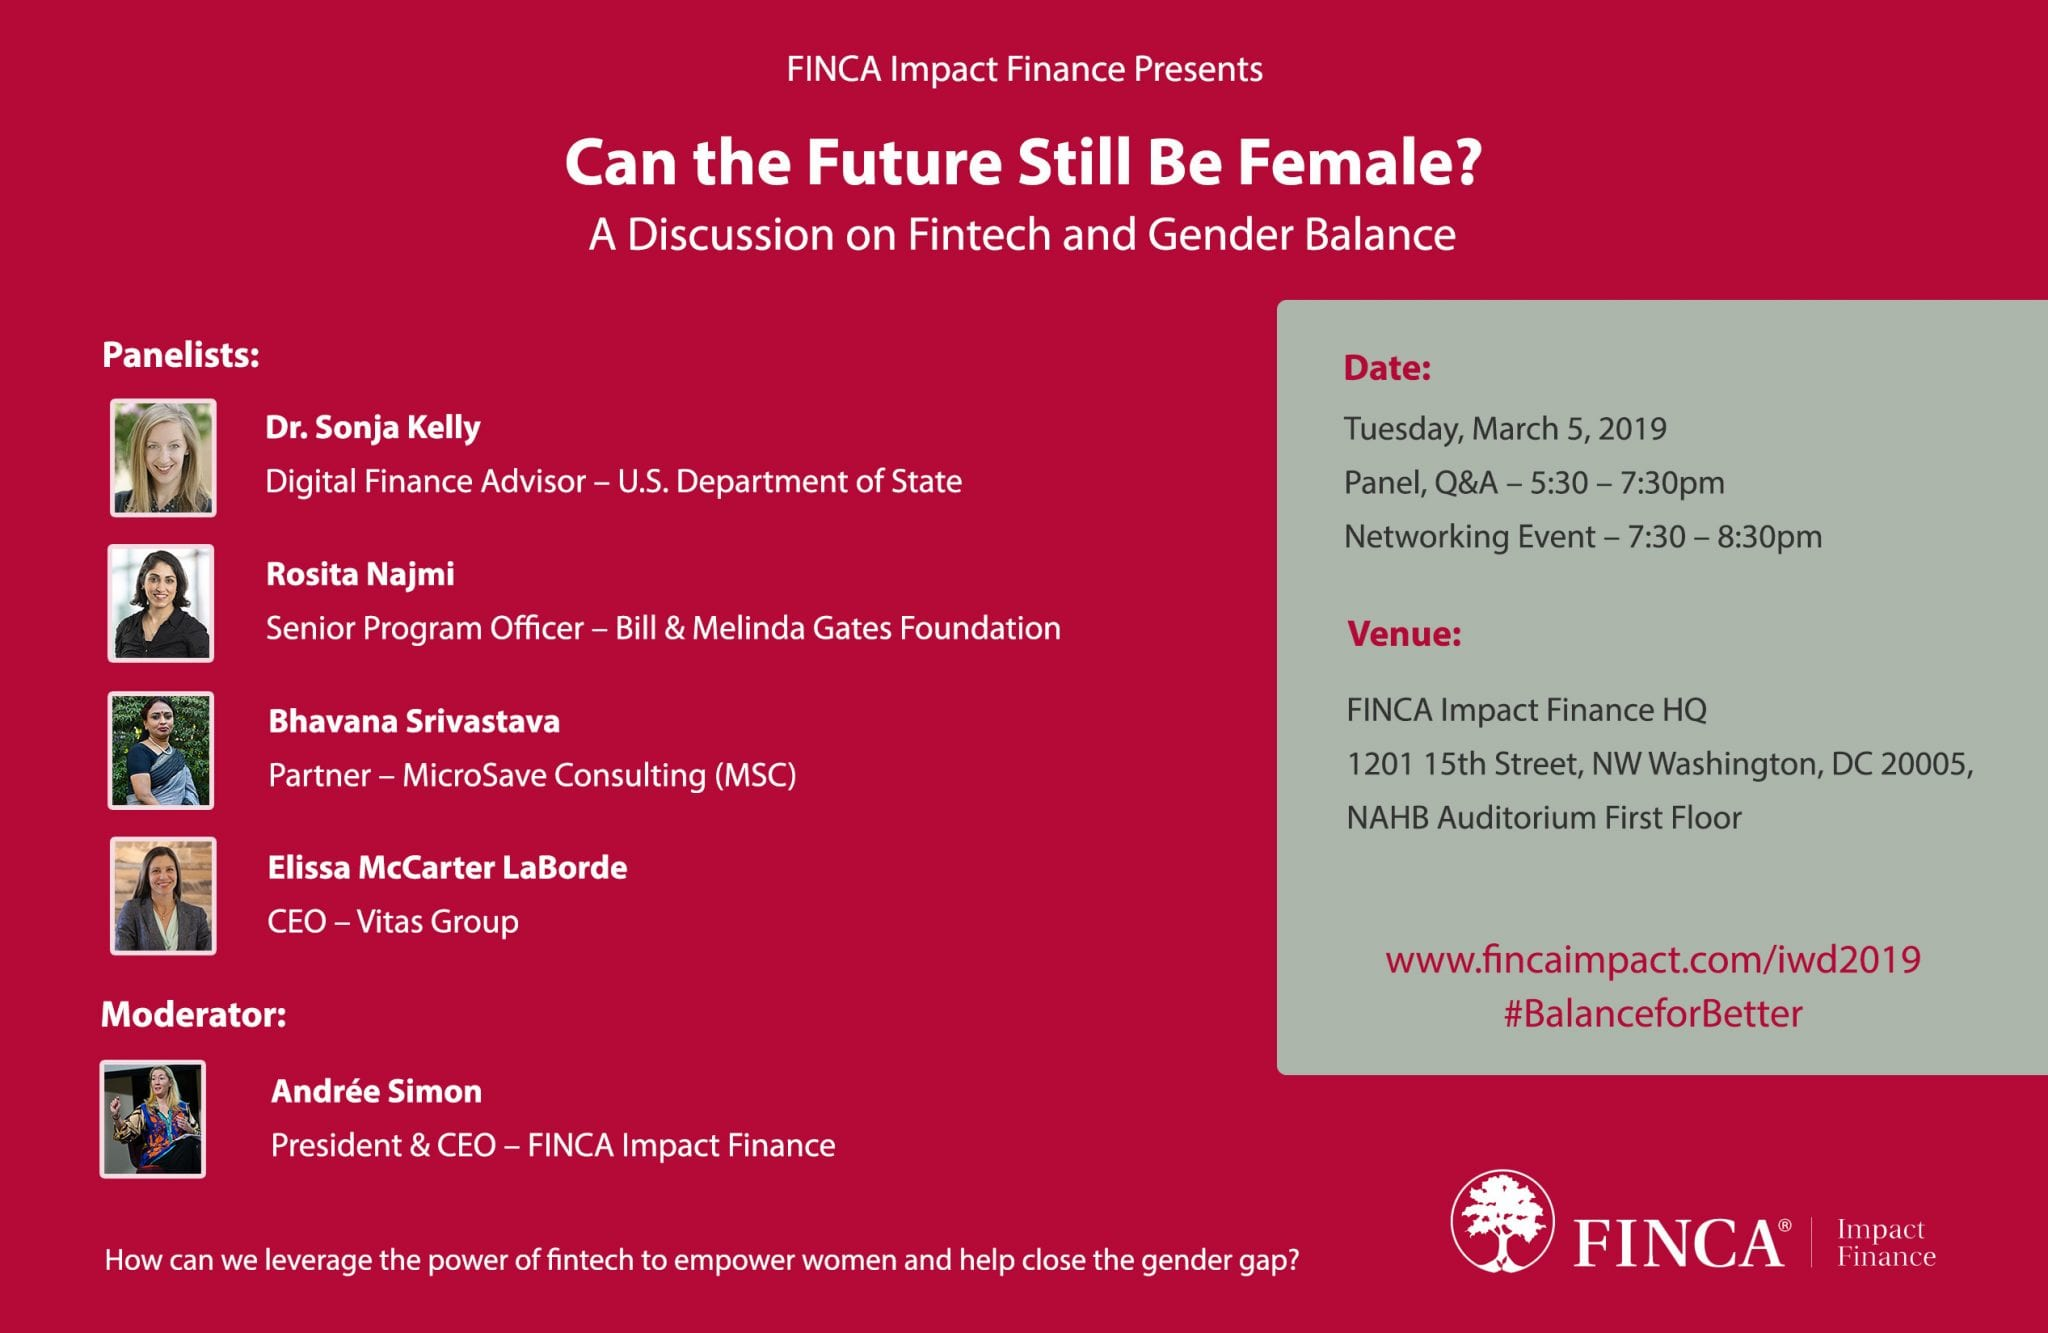 FINCA Impact Finance's International Women's Day panel will discuss the future of fintech and financial inclusion